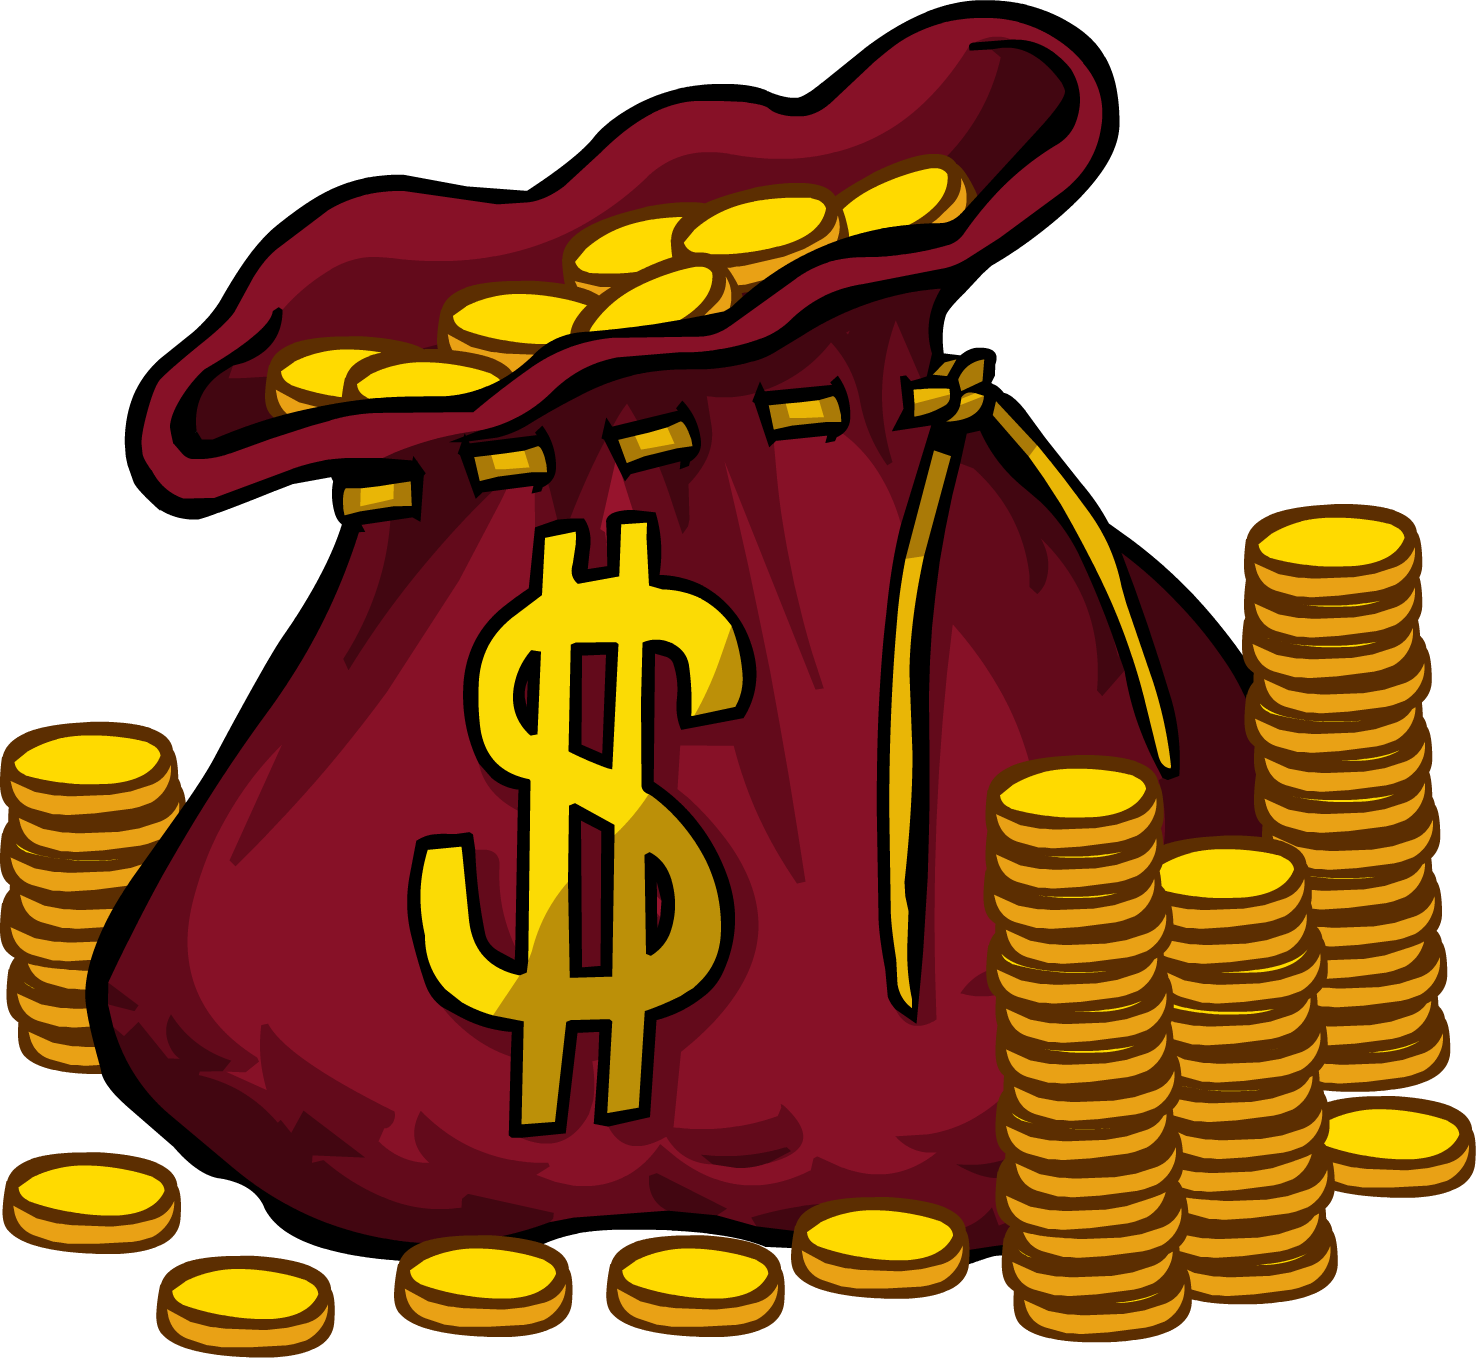 Cartoon money bag png. Image club penguin rewritten